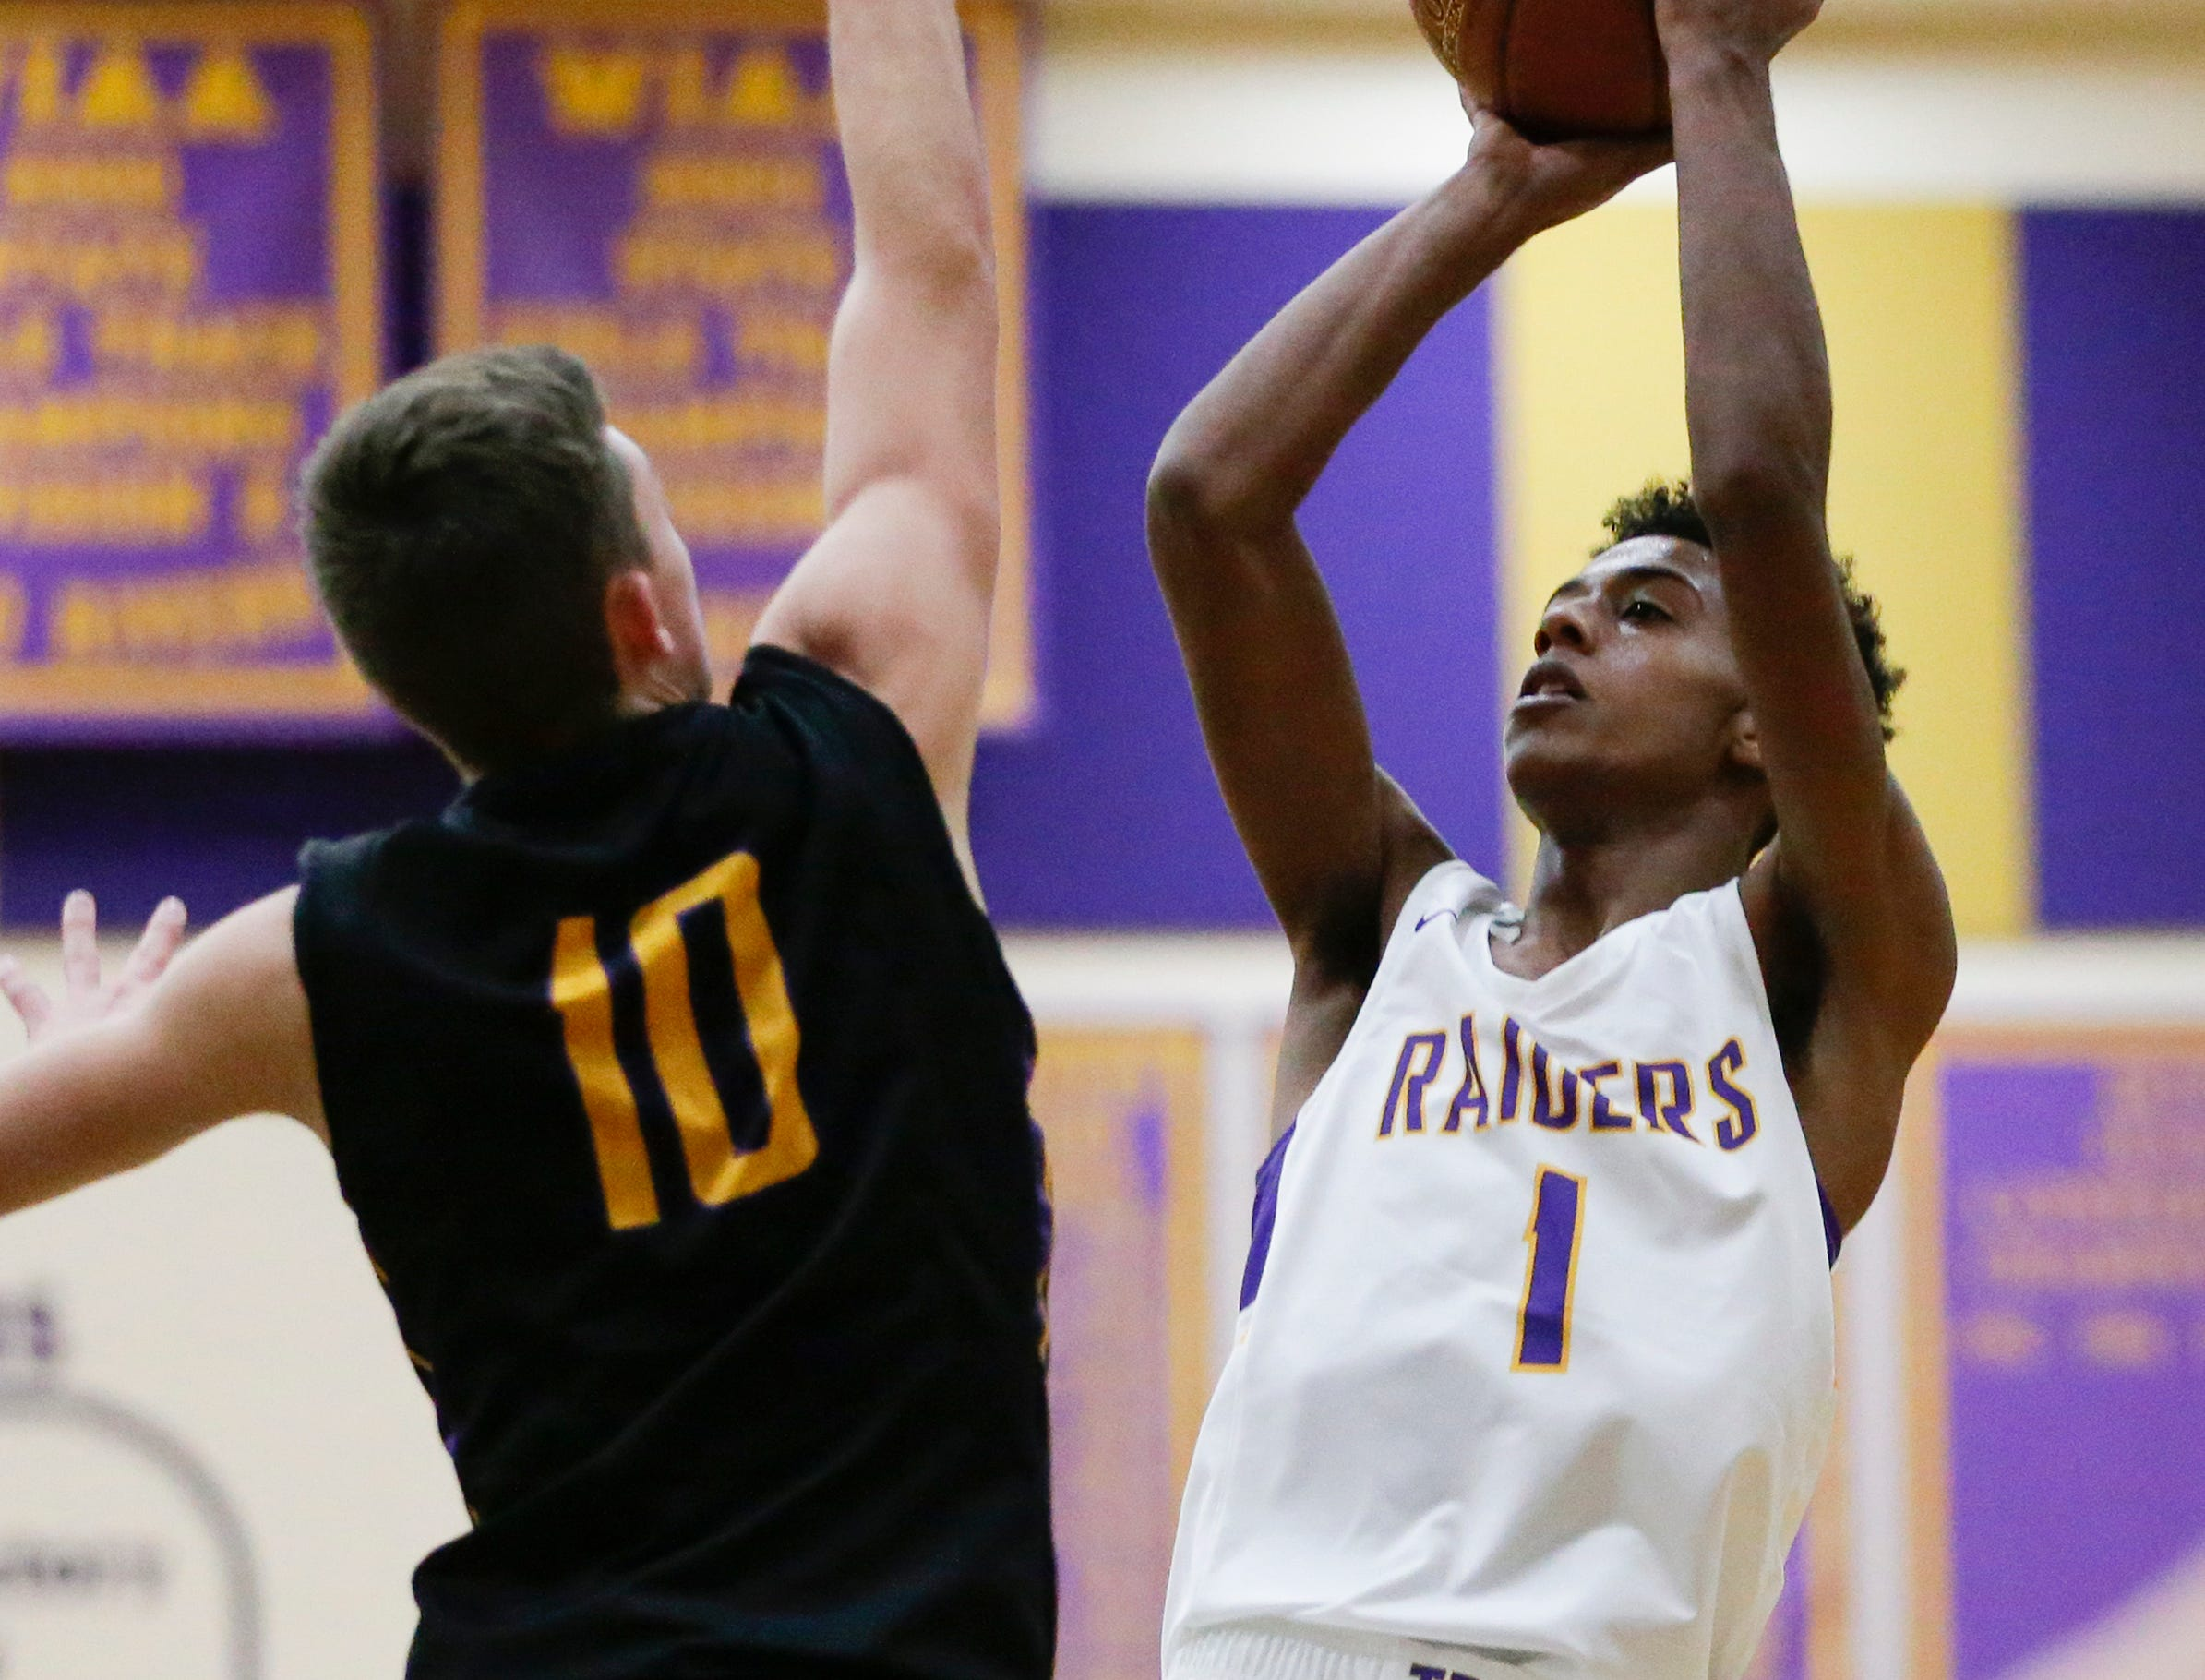 Two Rivers' Isaac Coronado puts up a shot over Sheboygan Falls' Justin Tenpas during an Eastern Wisconsin Conference game at Two Rivers High School Tuesday, December 4, 2018, in Two Rivers, Wis. Joshua Clark/USA TODAY NETWORK-Wisconsin